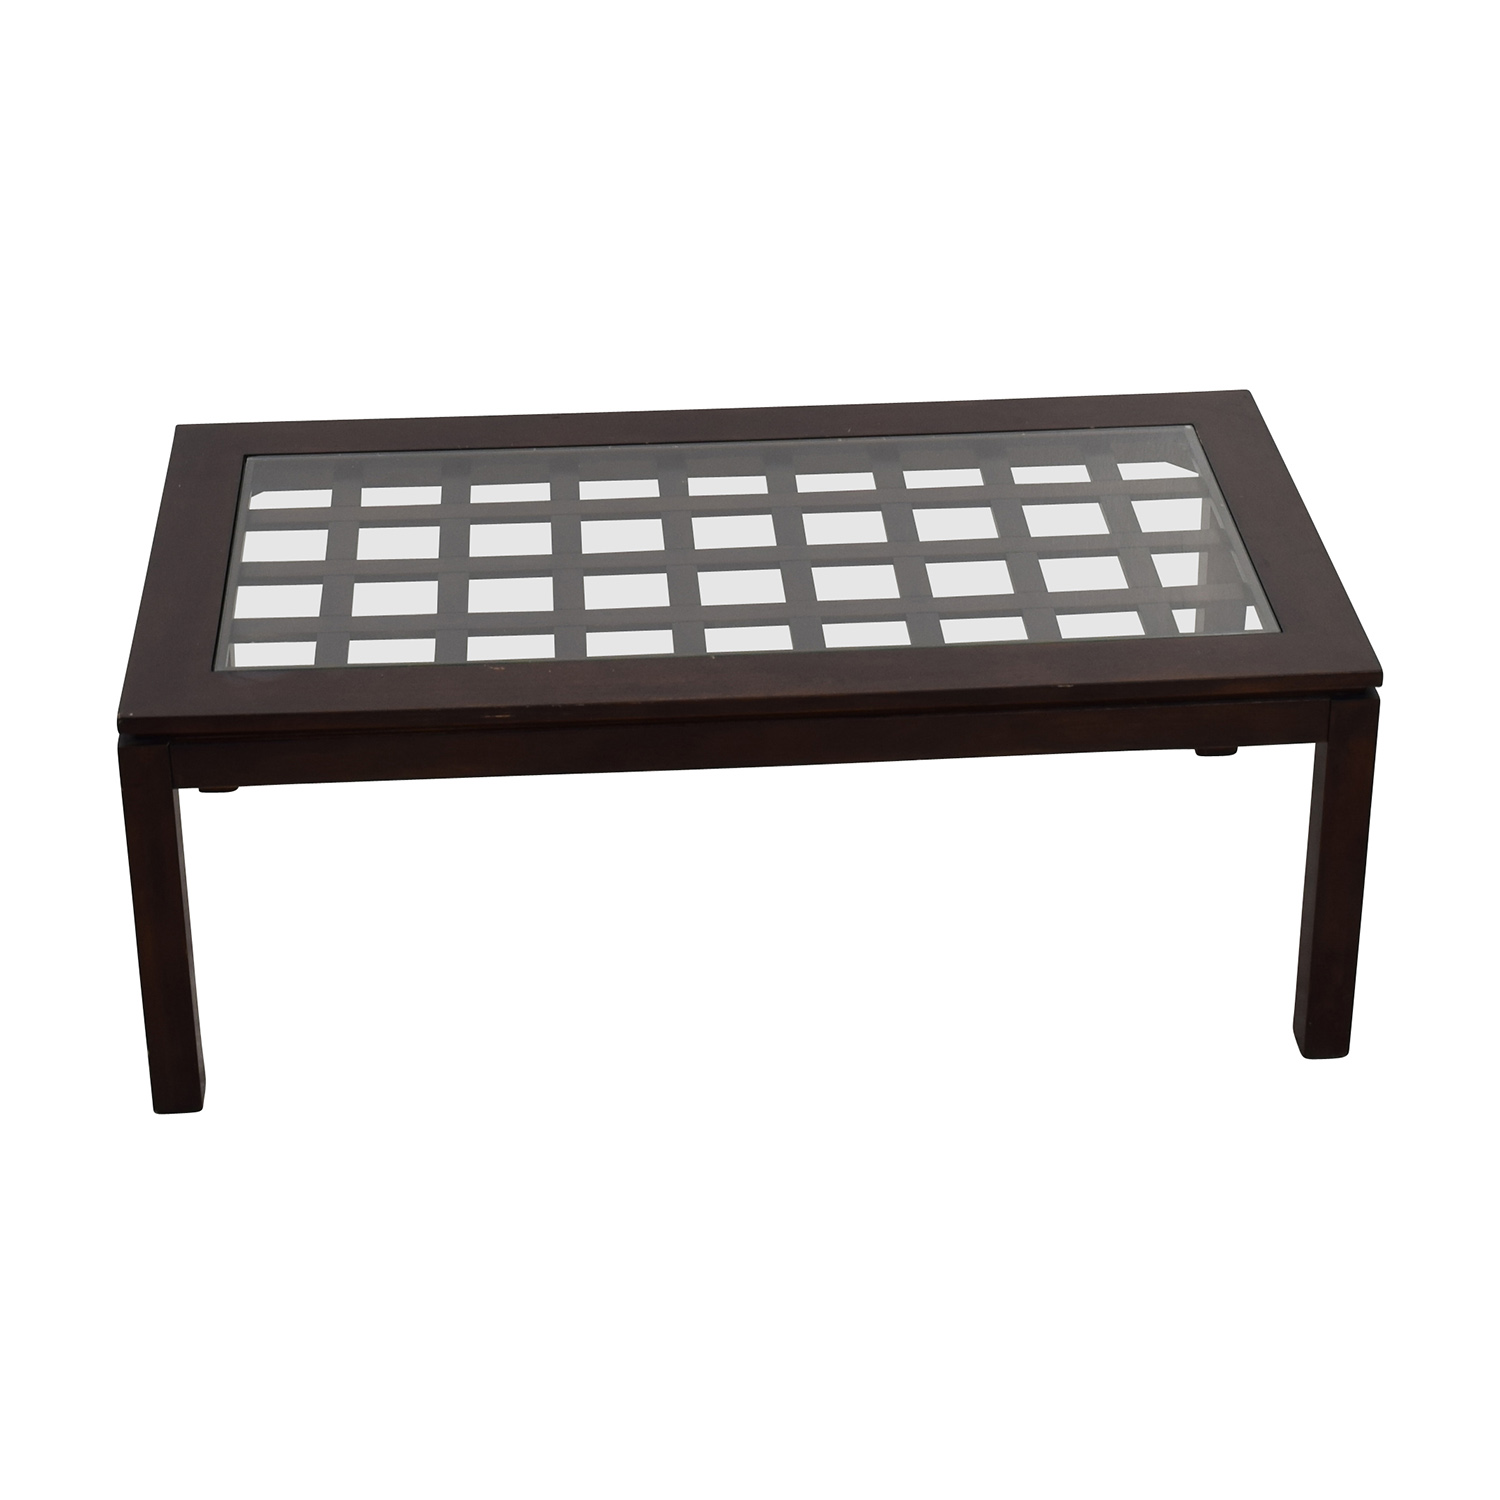 76 off ashley furniture ashley furniture mallacar coffee table tables Used glass coffee table